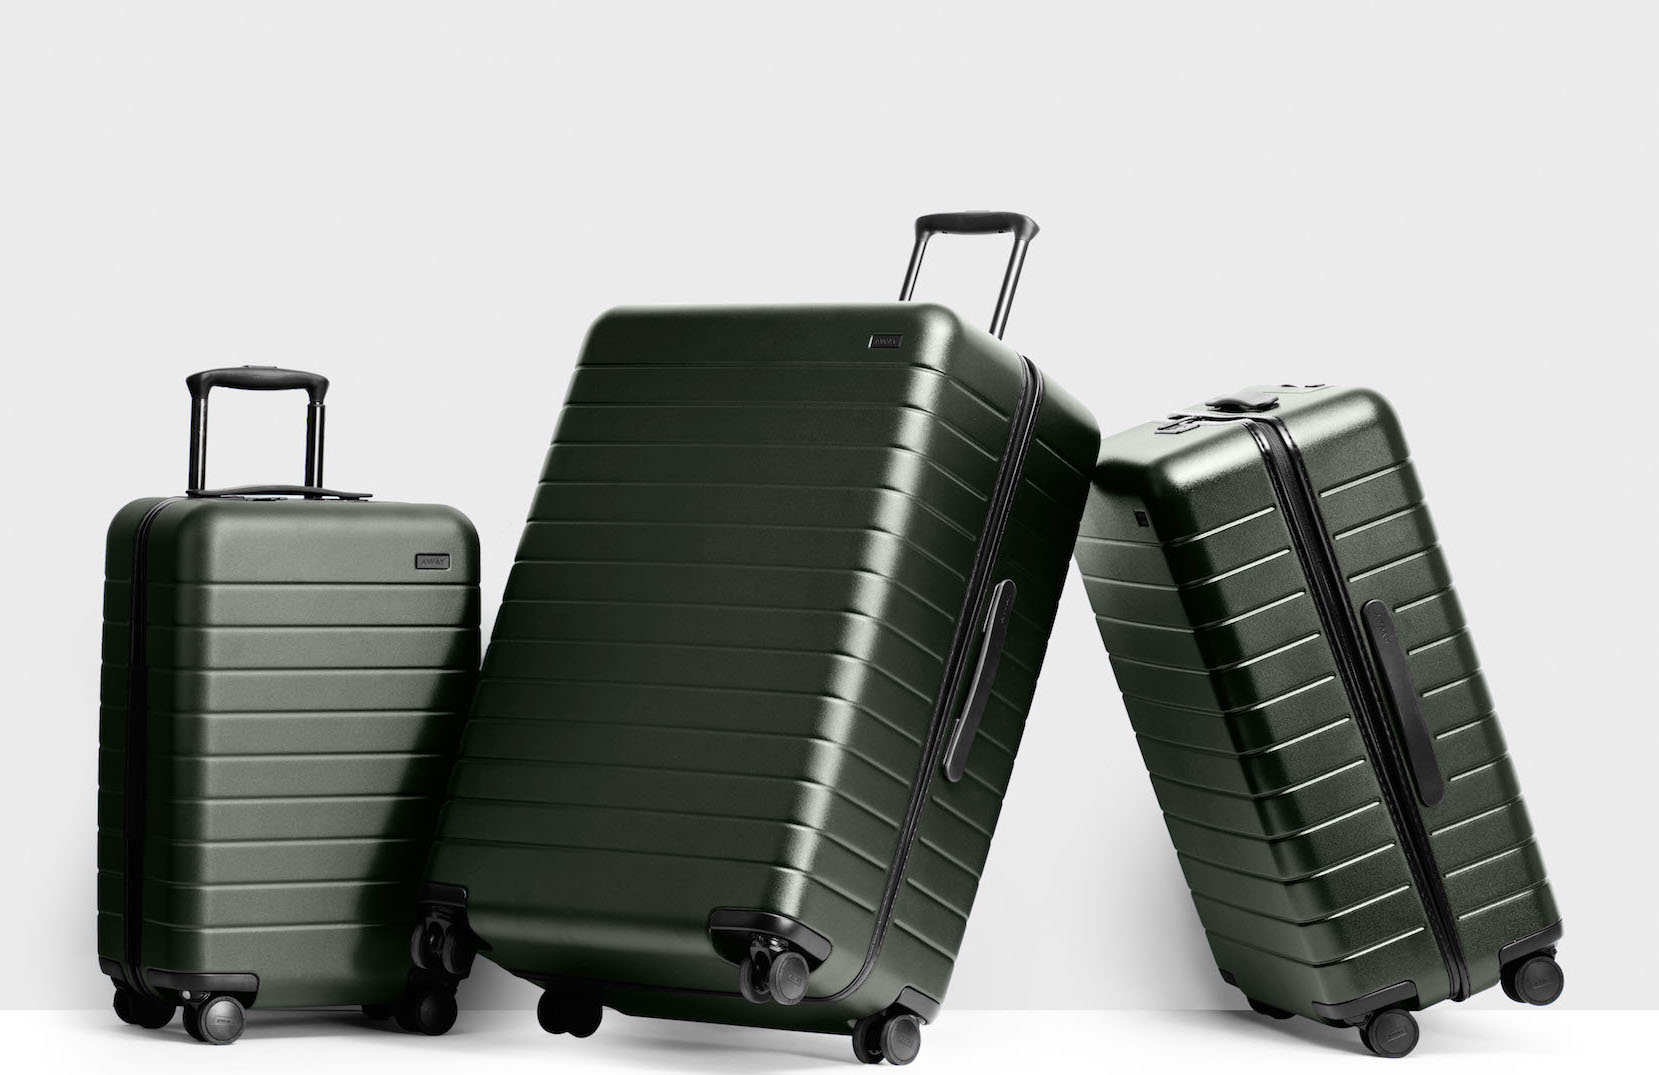 Should You Buy an Away Suitcase? - Racked